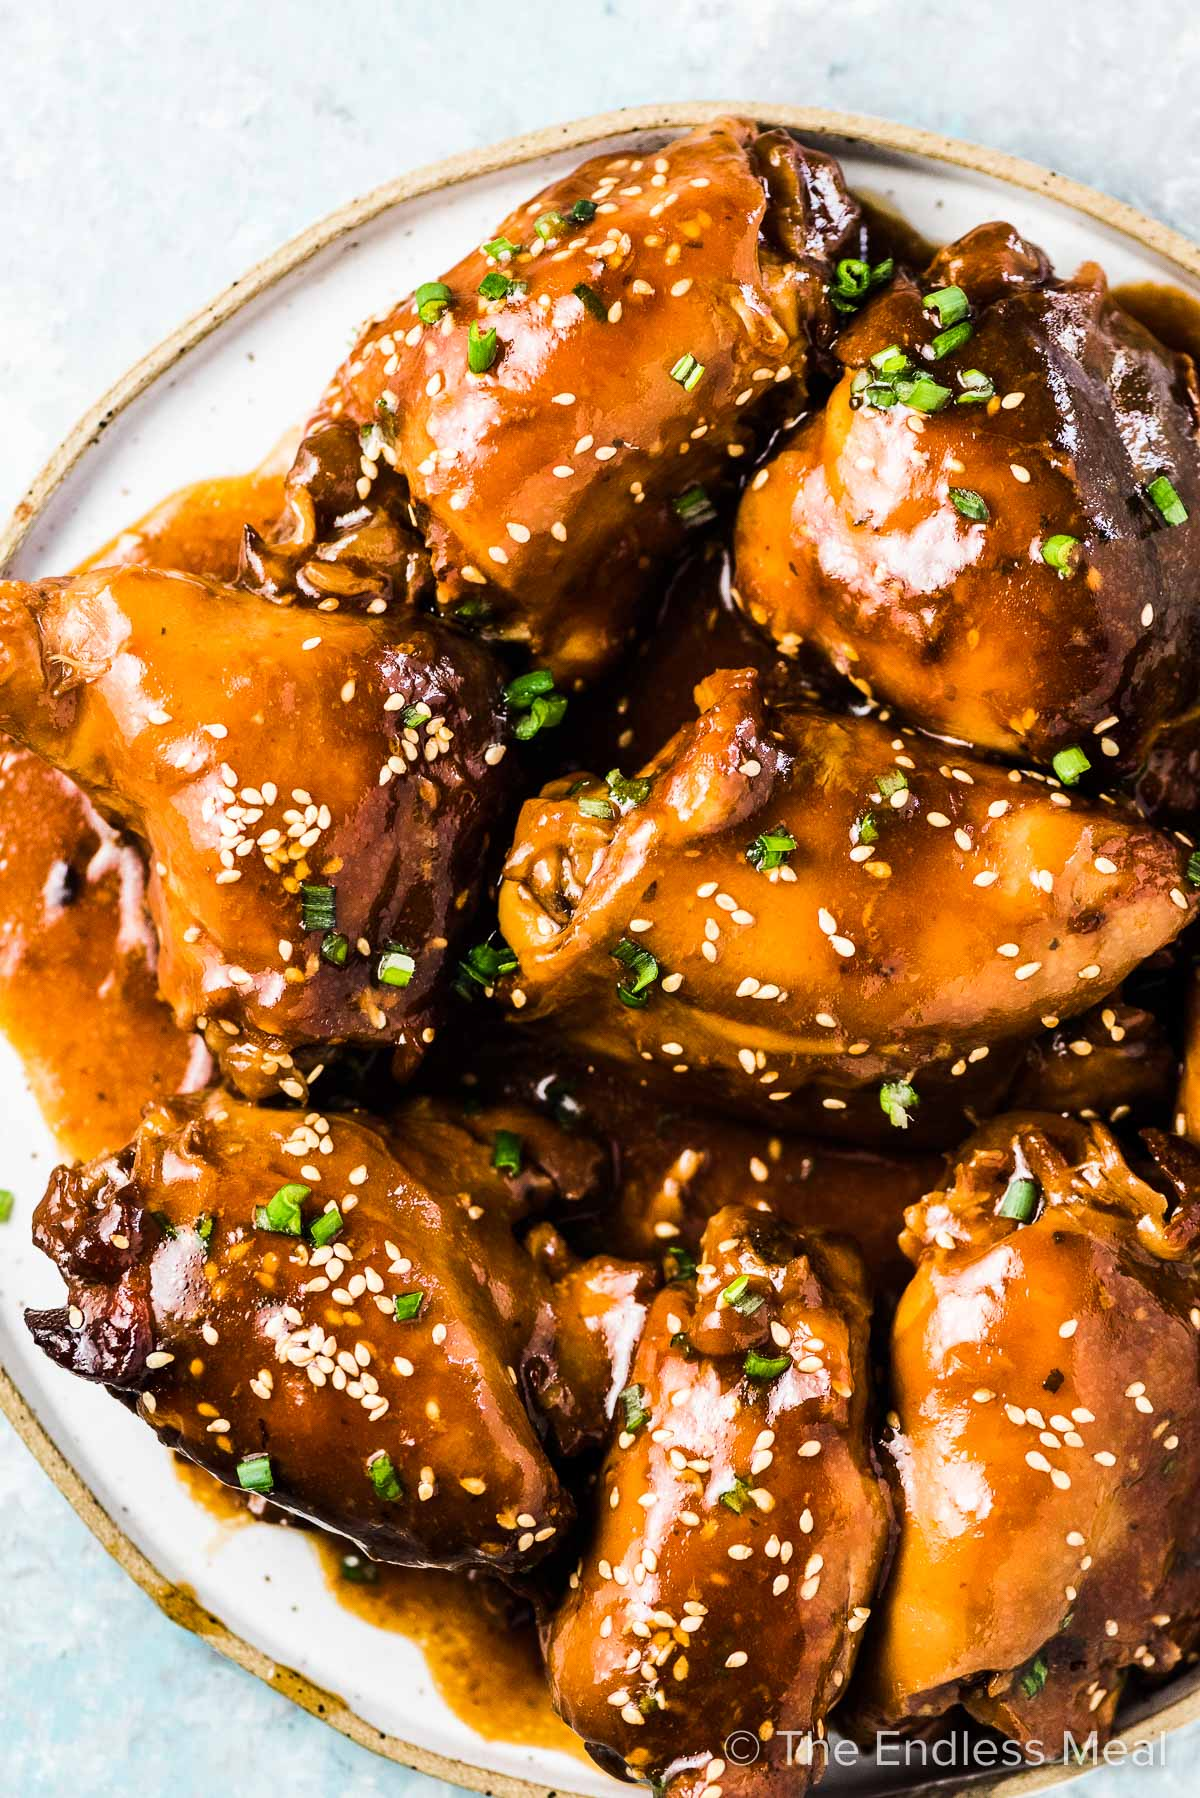 Slow cooker honey garlic chicken thighs on a white plate.